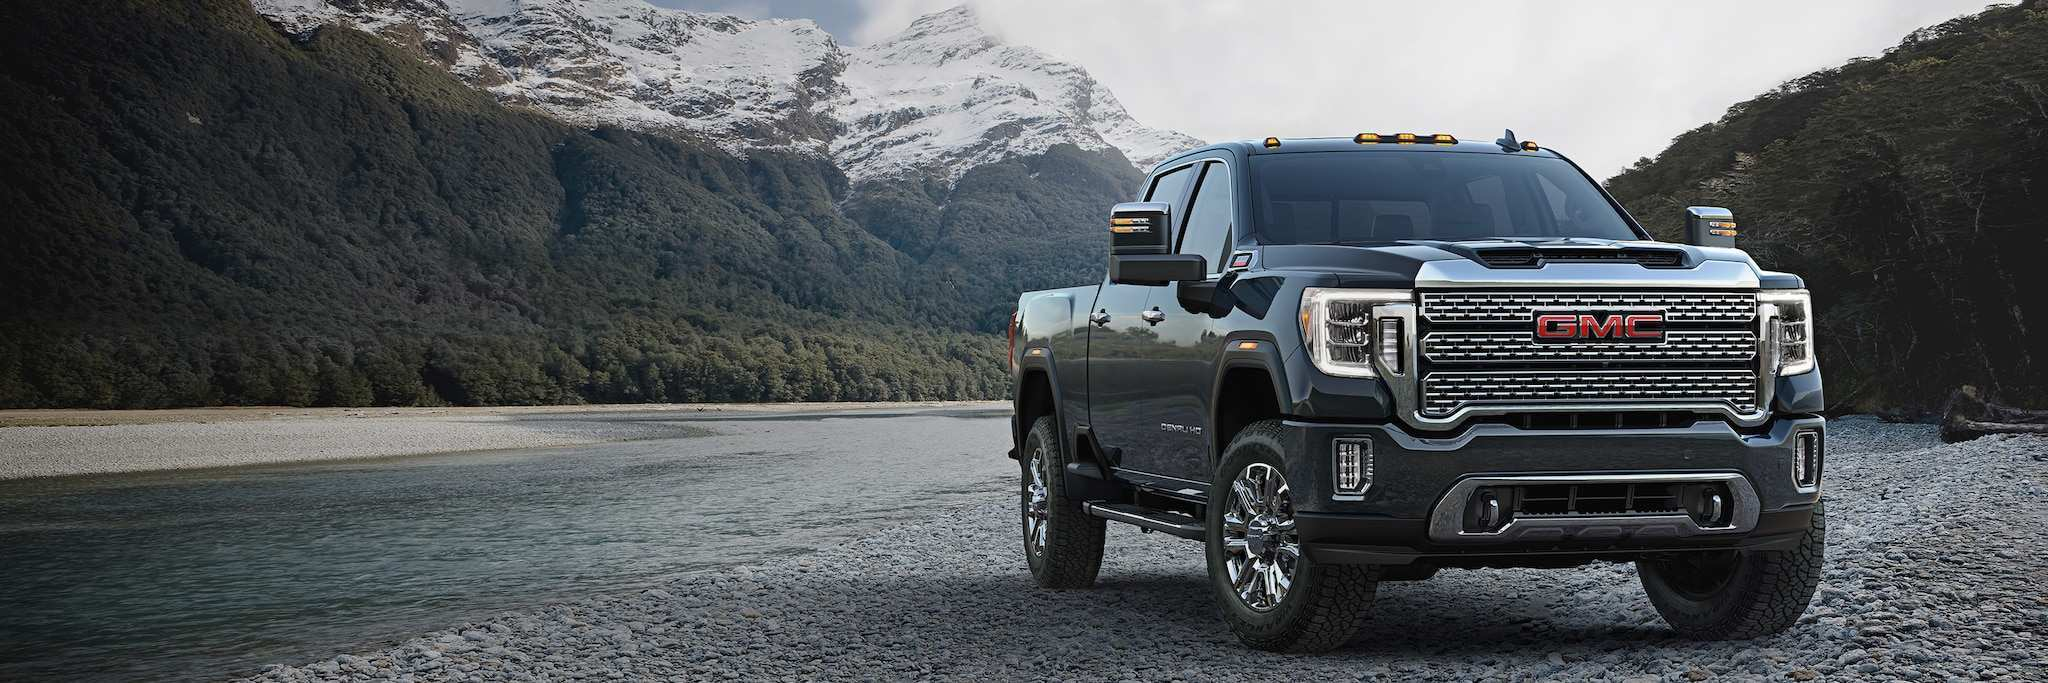 69 New 2020 Gmc Sierra Hd Denali Model